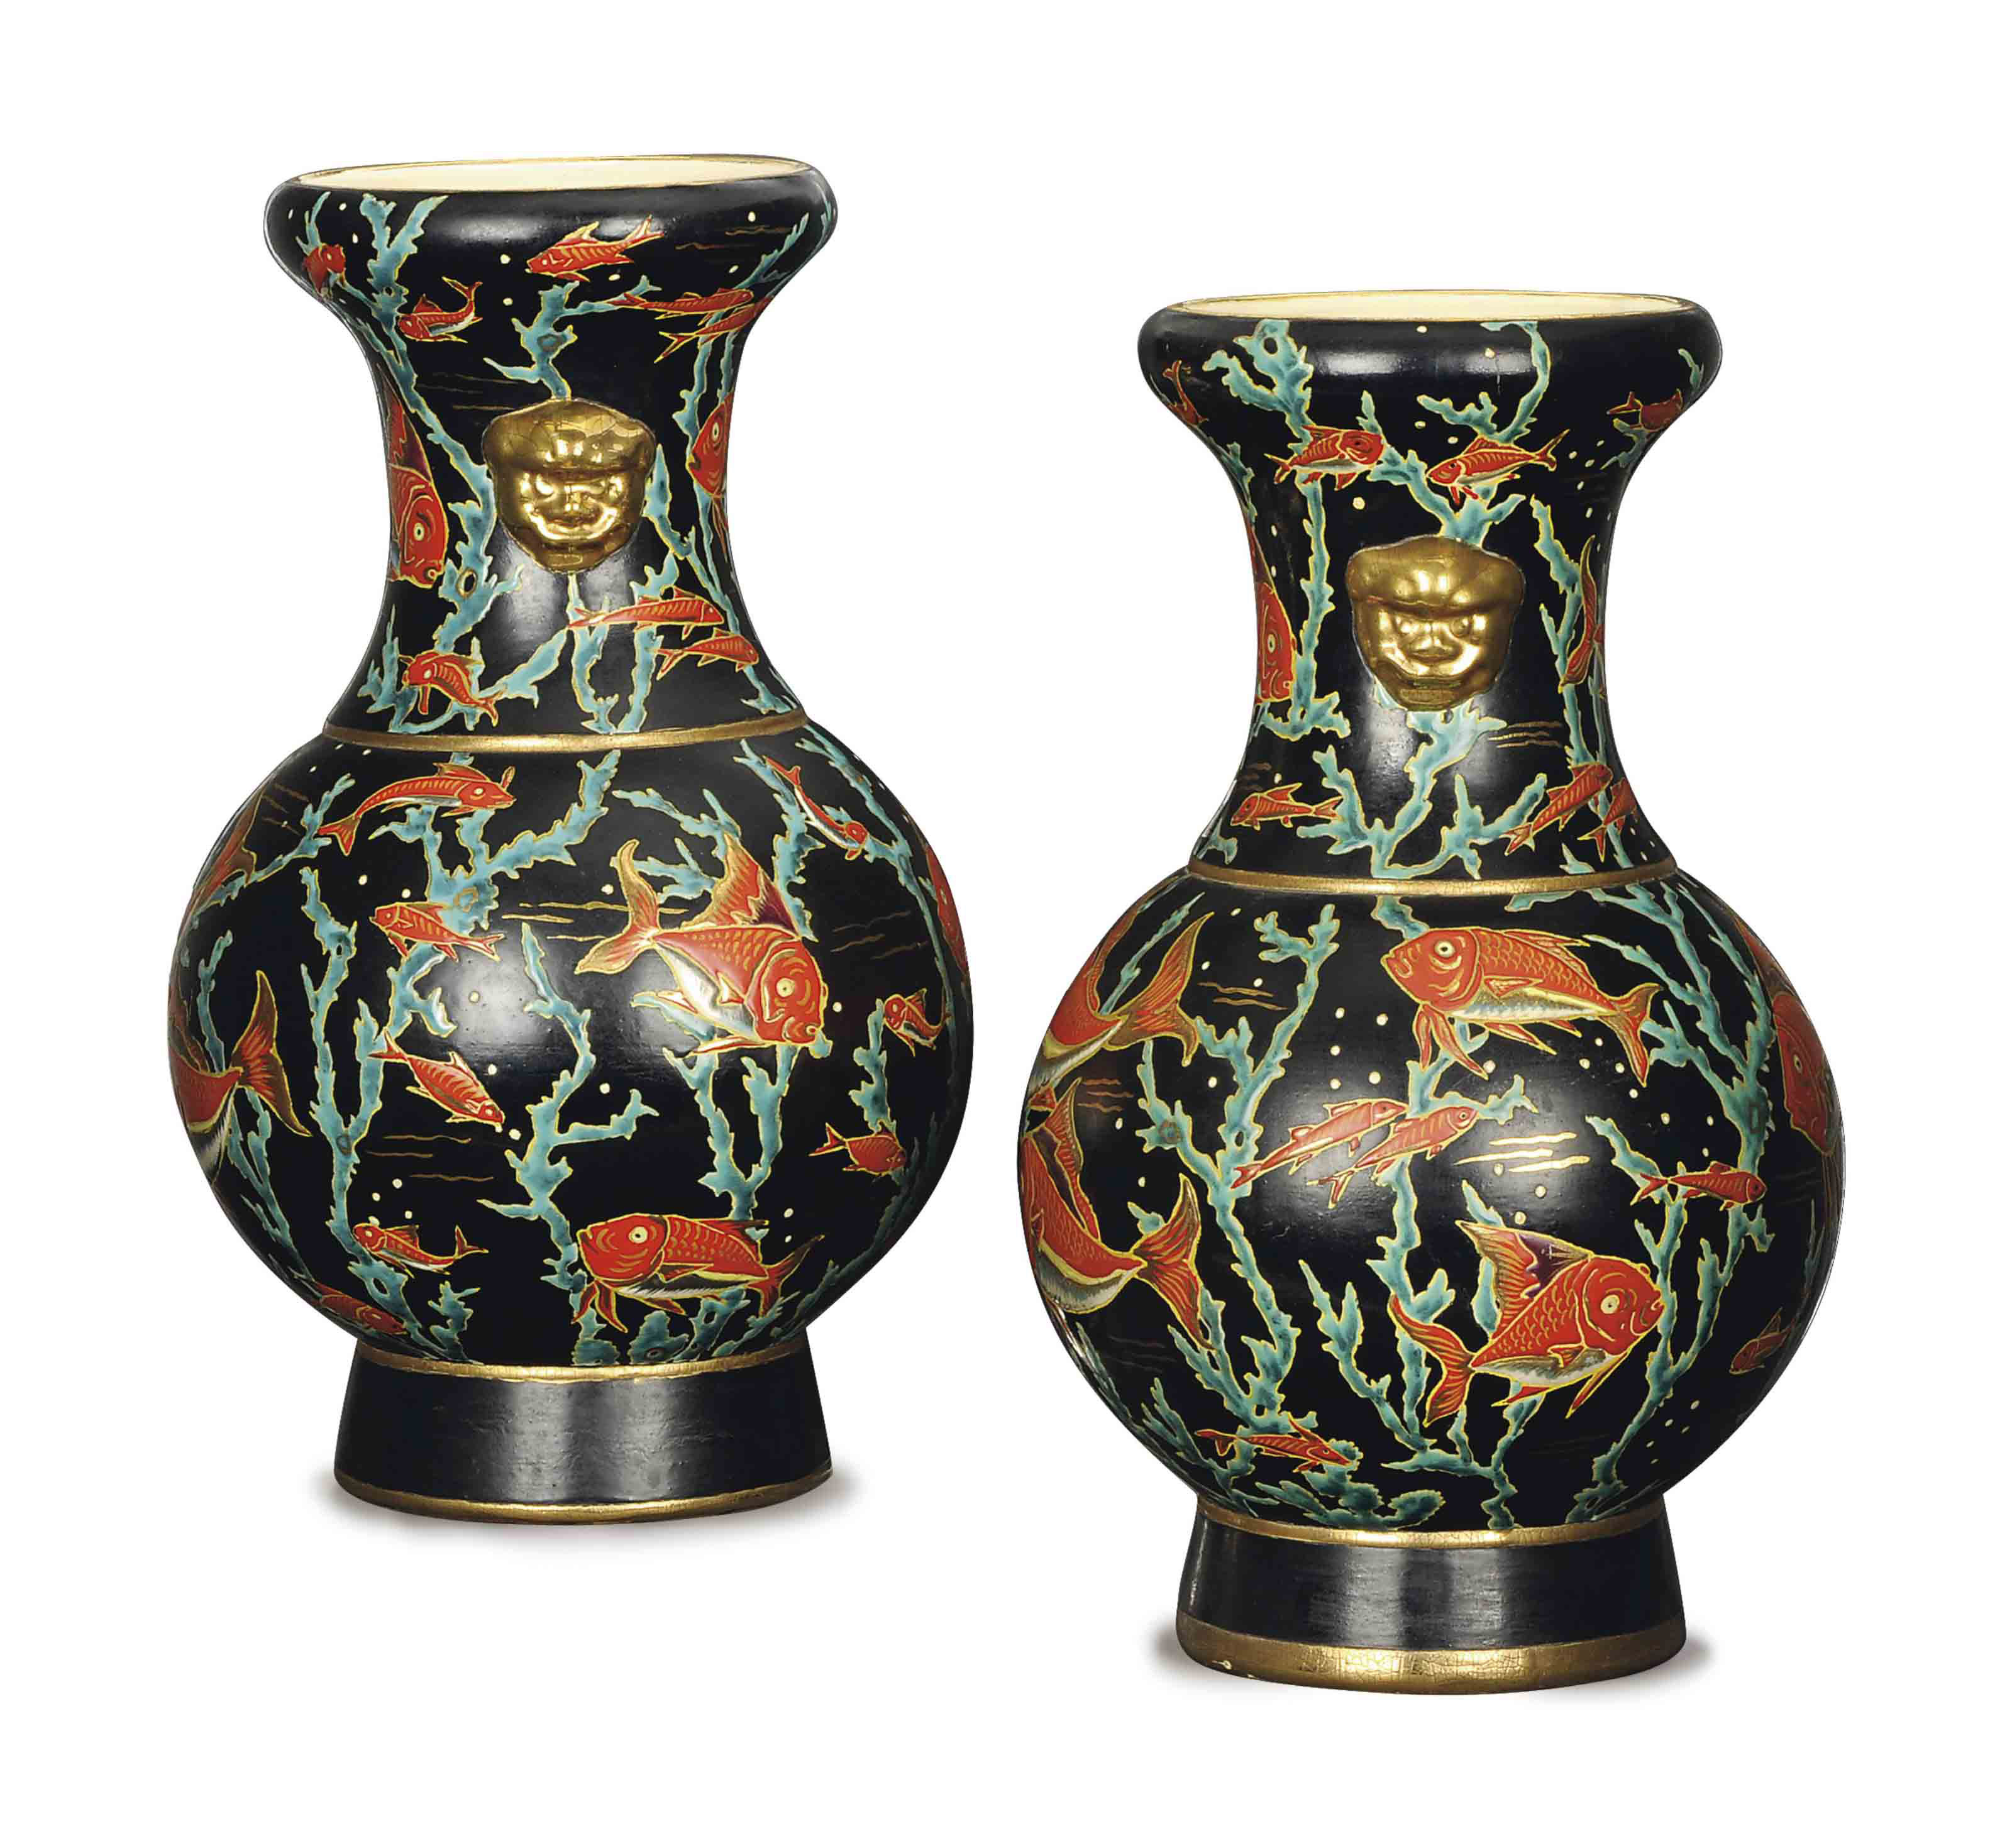 A PAIR OF FRENCH BLACK-GROUND PORCELAIN VASES ENAMELED WITH FISH,